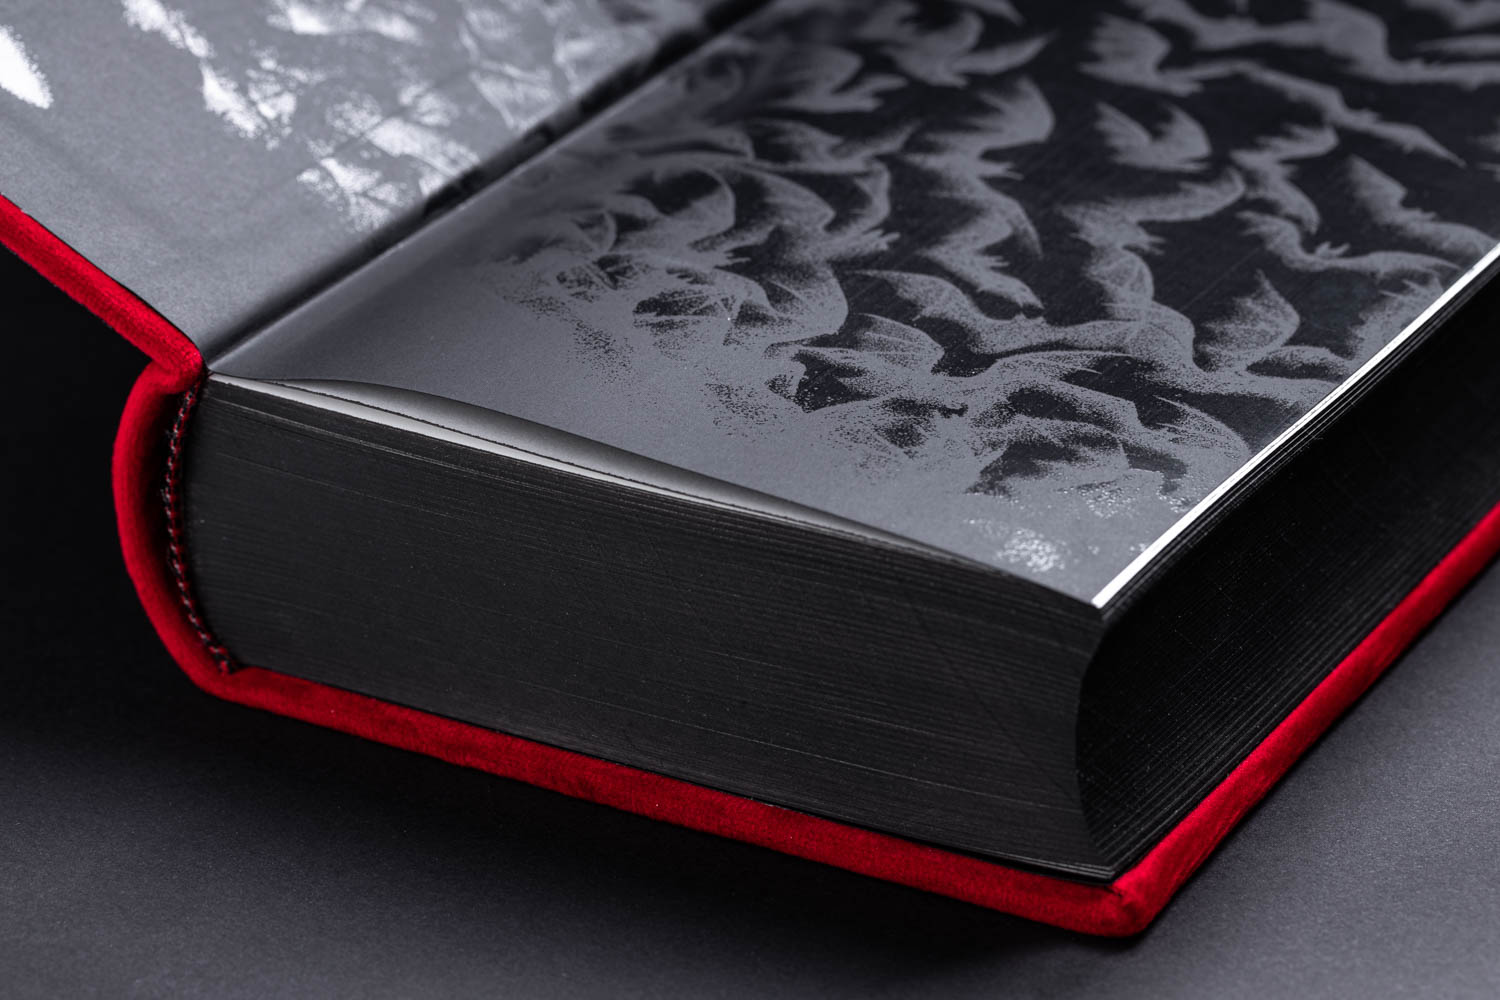 details – dracula endpapers